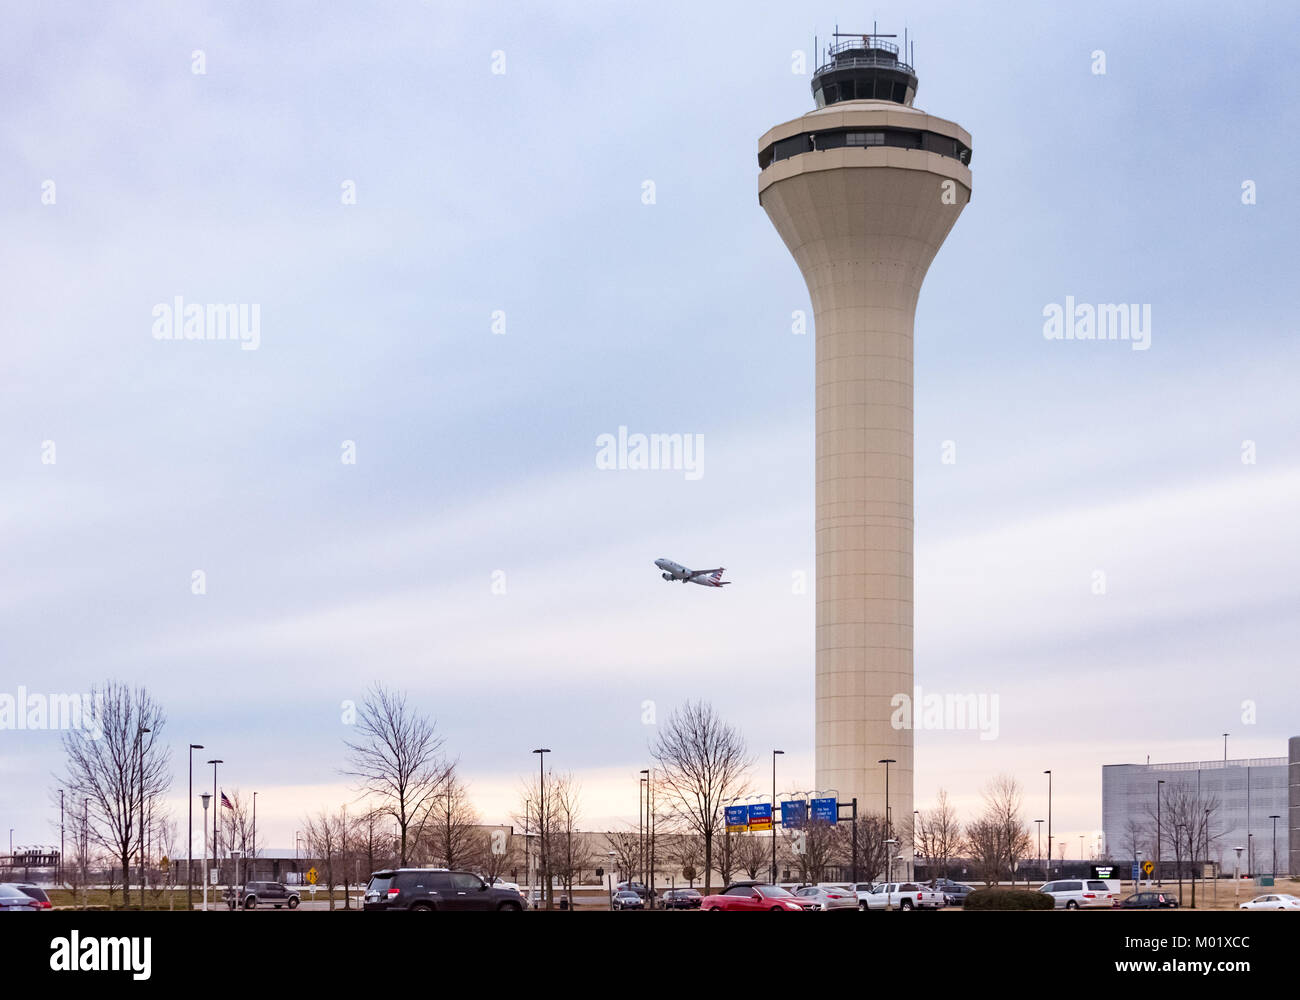 American Airlines jet takes off at dusk from Memphis International Airport in Memphis, Tennessee, USA. - Stock Image